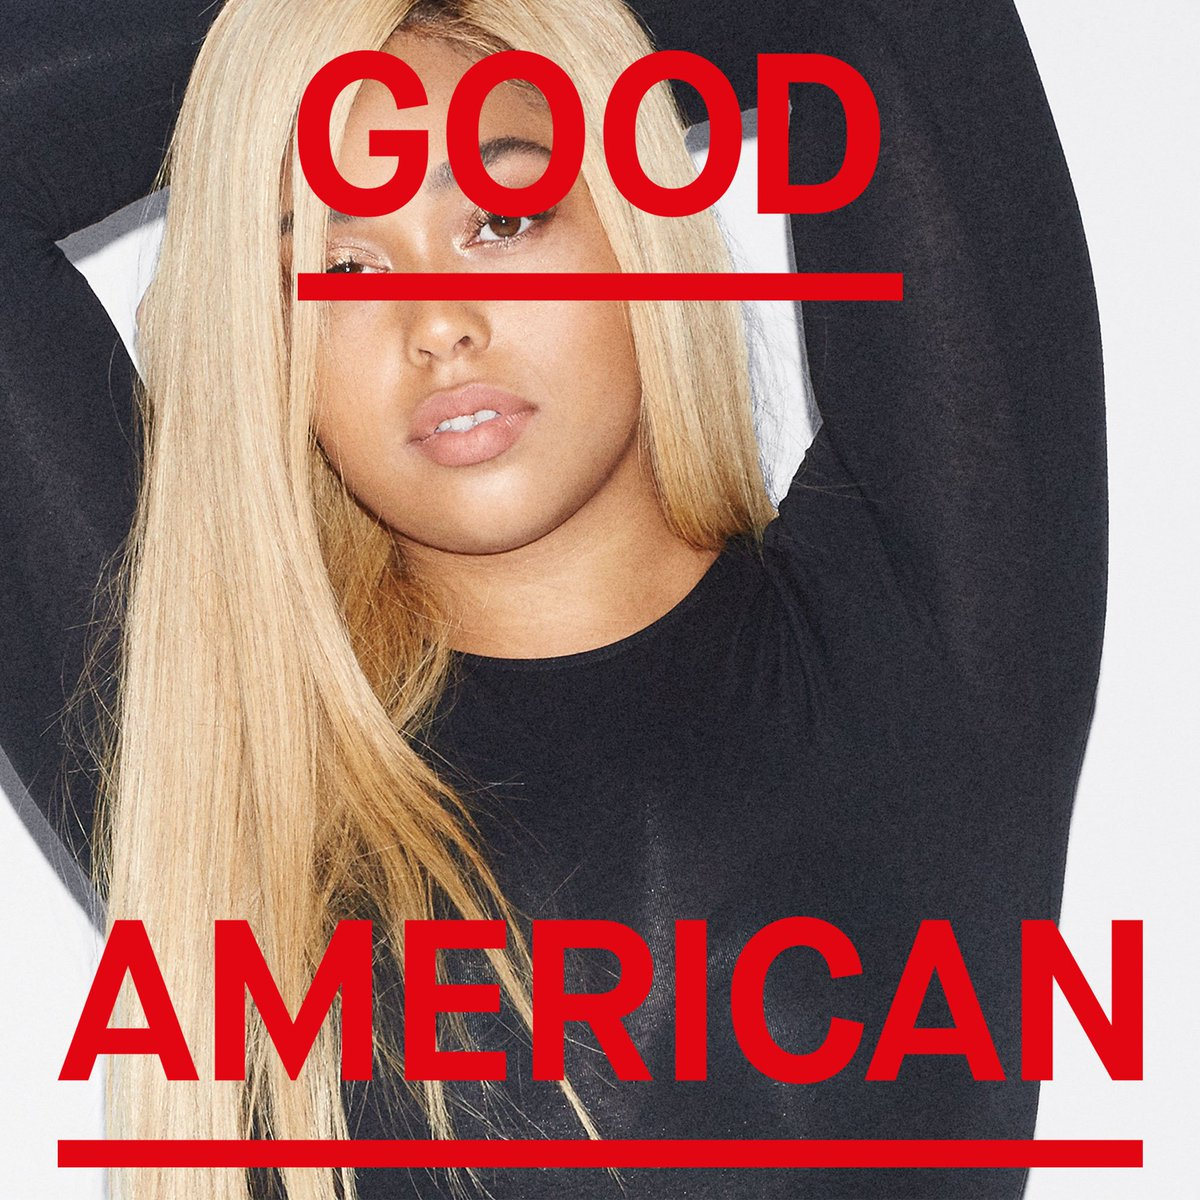 I'm so proud to introduce the first of my girls #goodsquad @jordynwoods @goodamerican https://t.co/NByZkY8Fu2